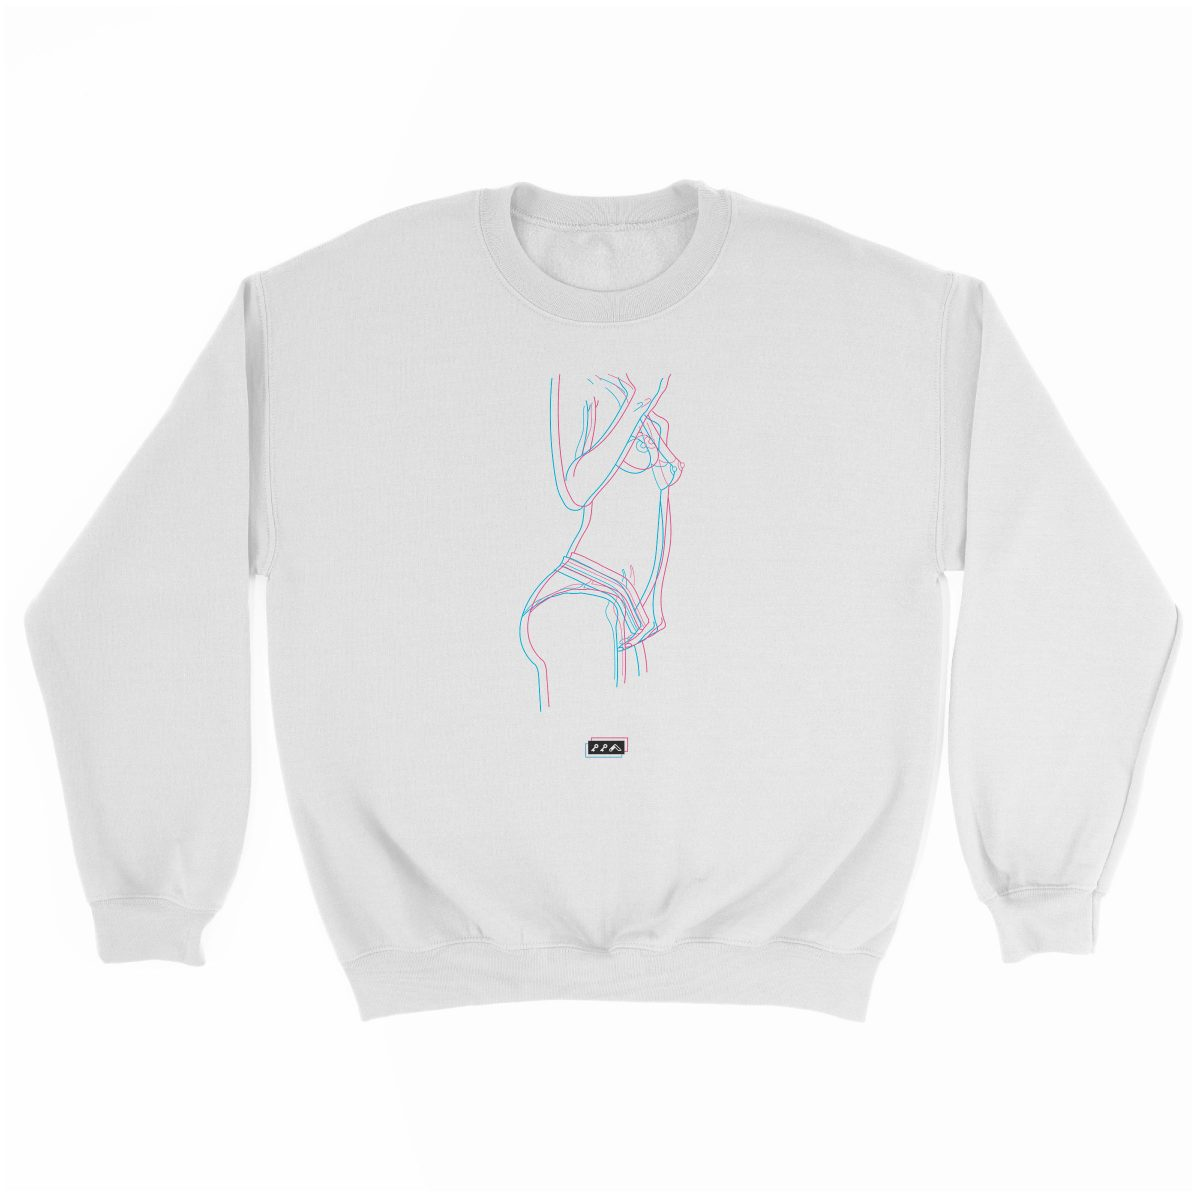 electric feelz sexy naked line drawing sweatshirt in white